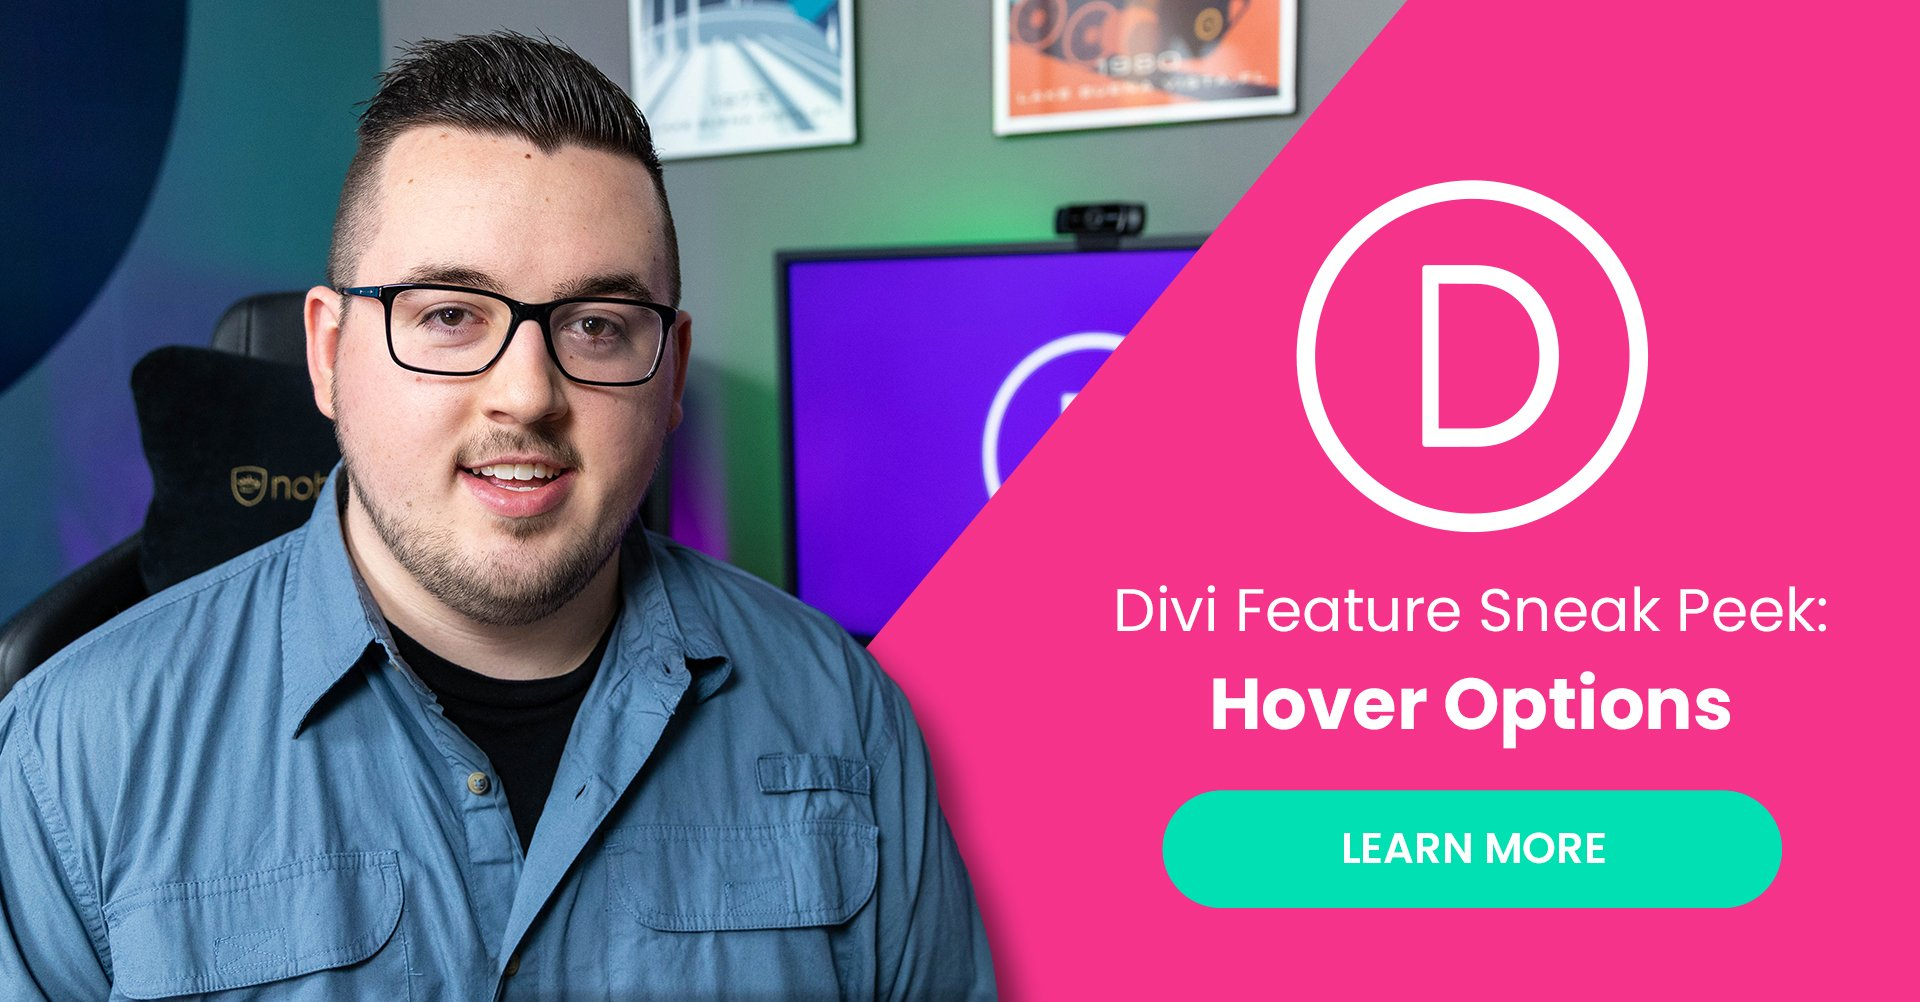 Divi Feature Sneak Peek: Hover Options